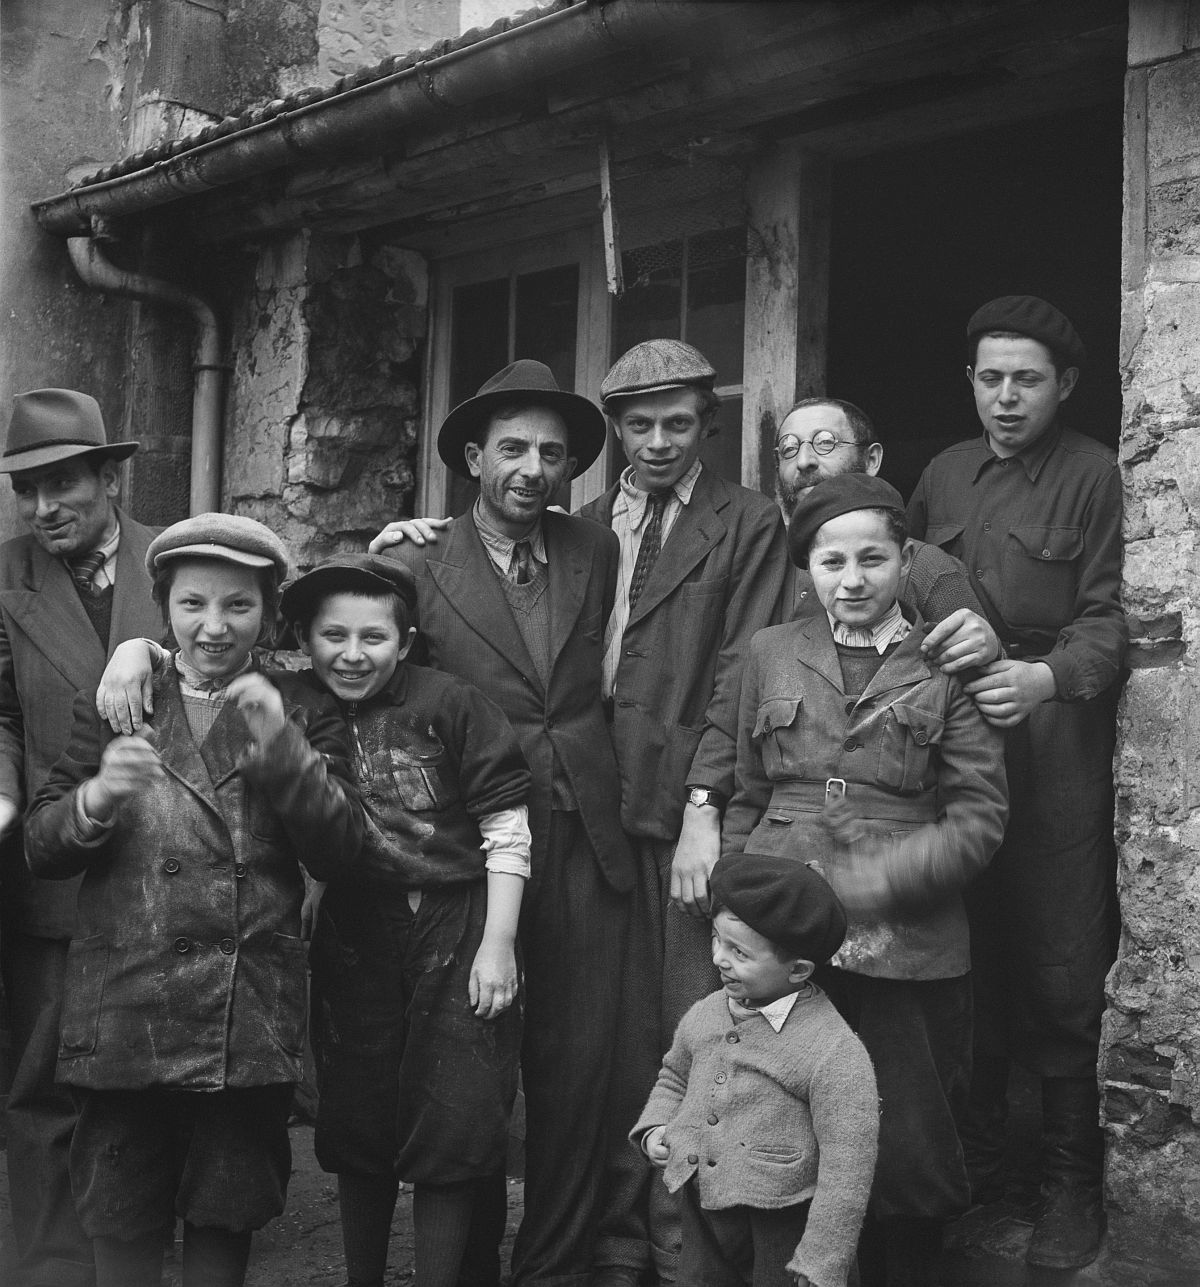 Roman Vishniac, [Holocaust survivors gathering outside a building where matzoh is being made in preparations for the Passover holiday, Hénonville Displaced Persons' Camp, Picardy, France], 1947. Ink-jet print. © Mara Vishniac Kohn, courtesy International Center of Photography.